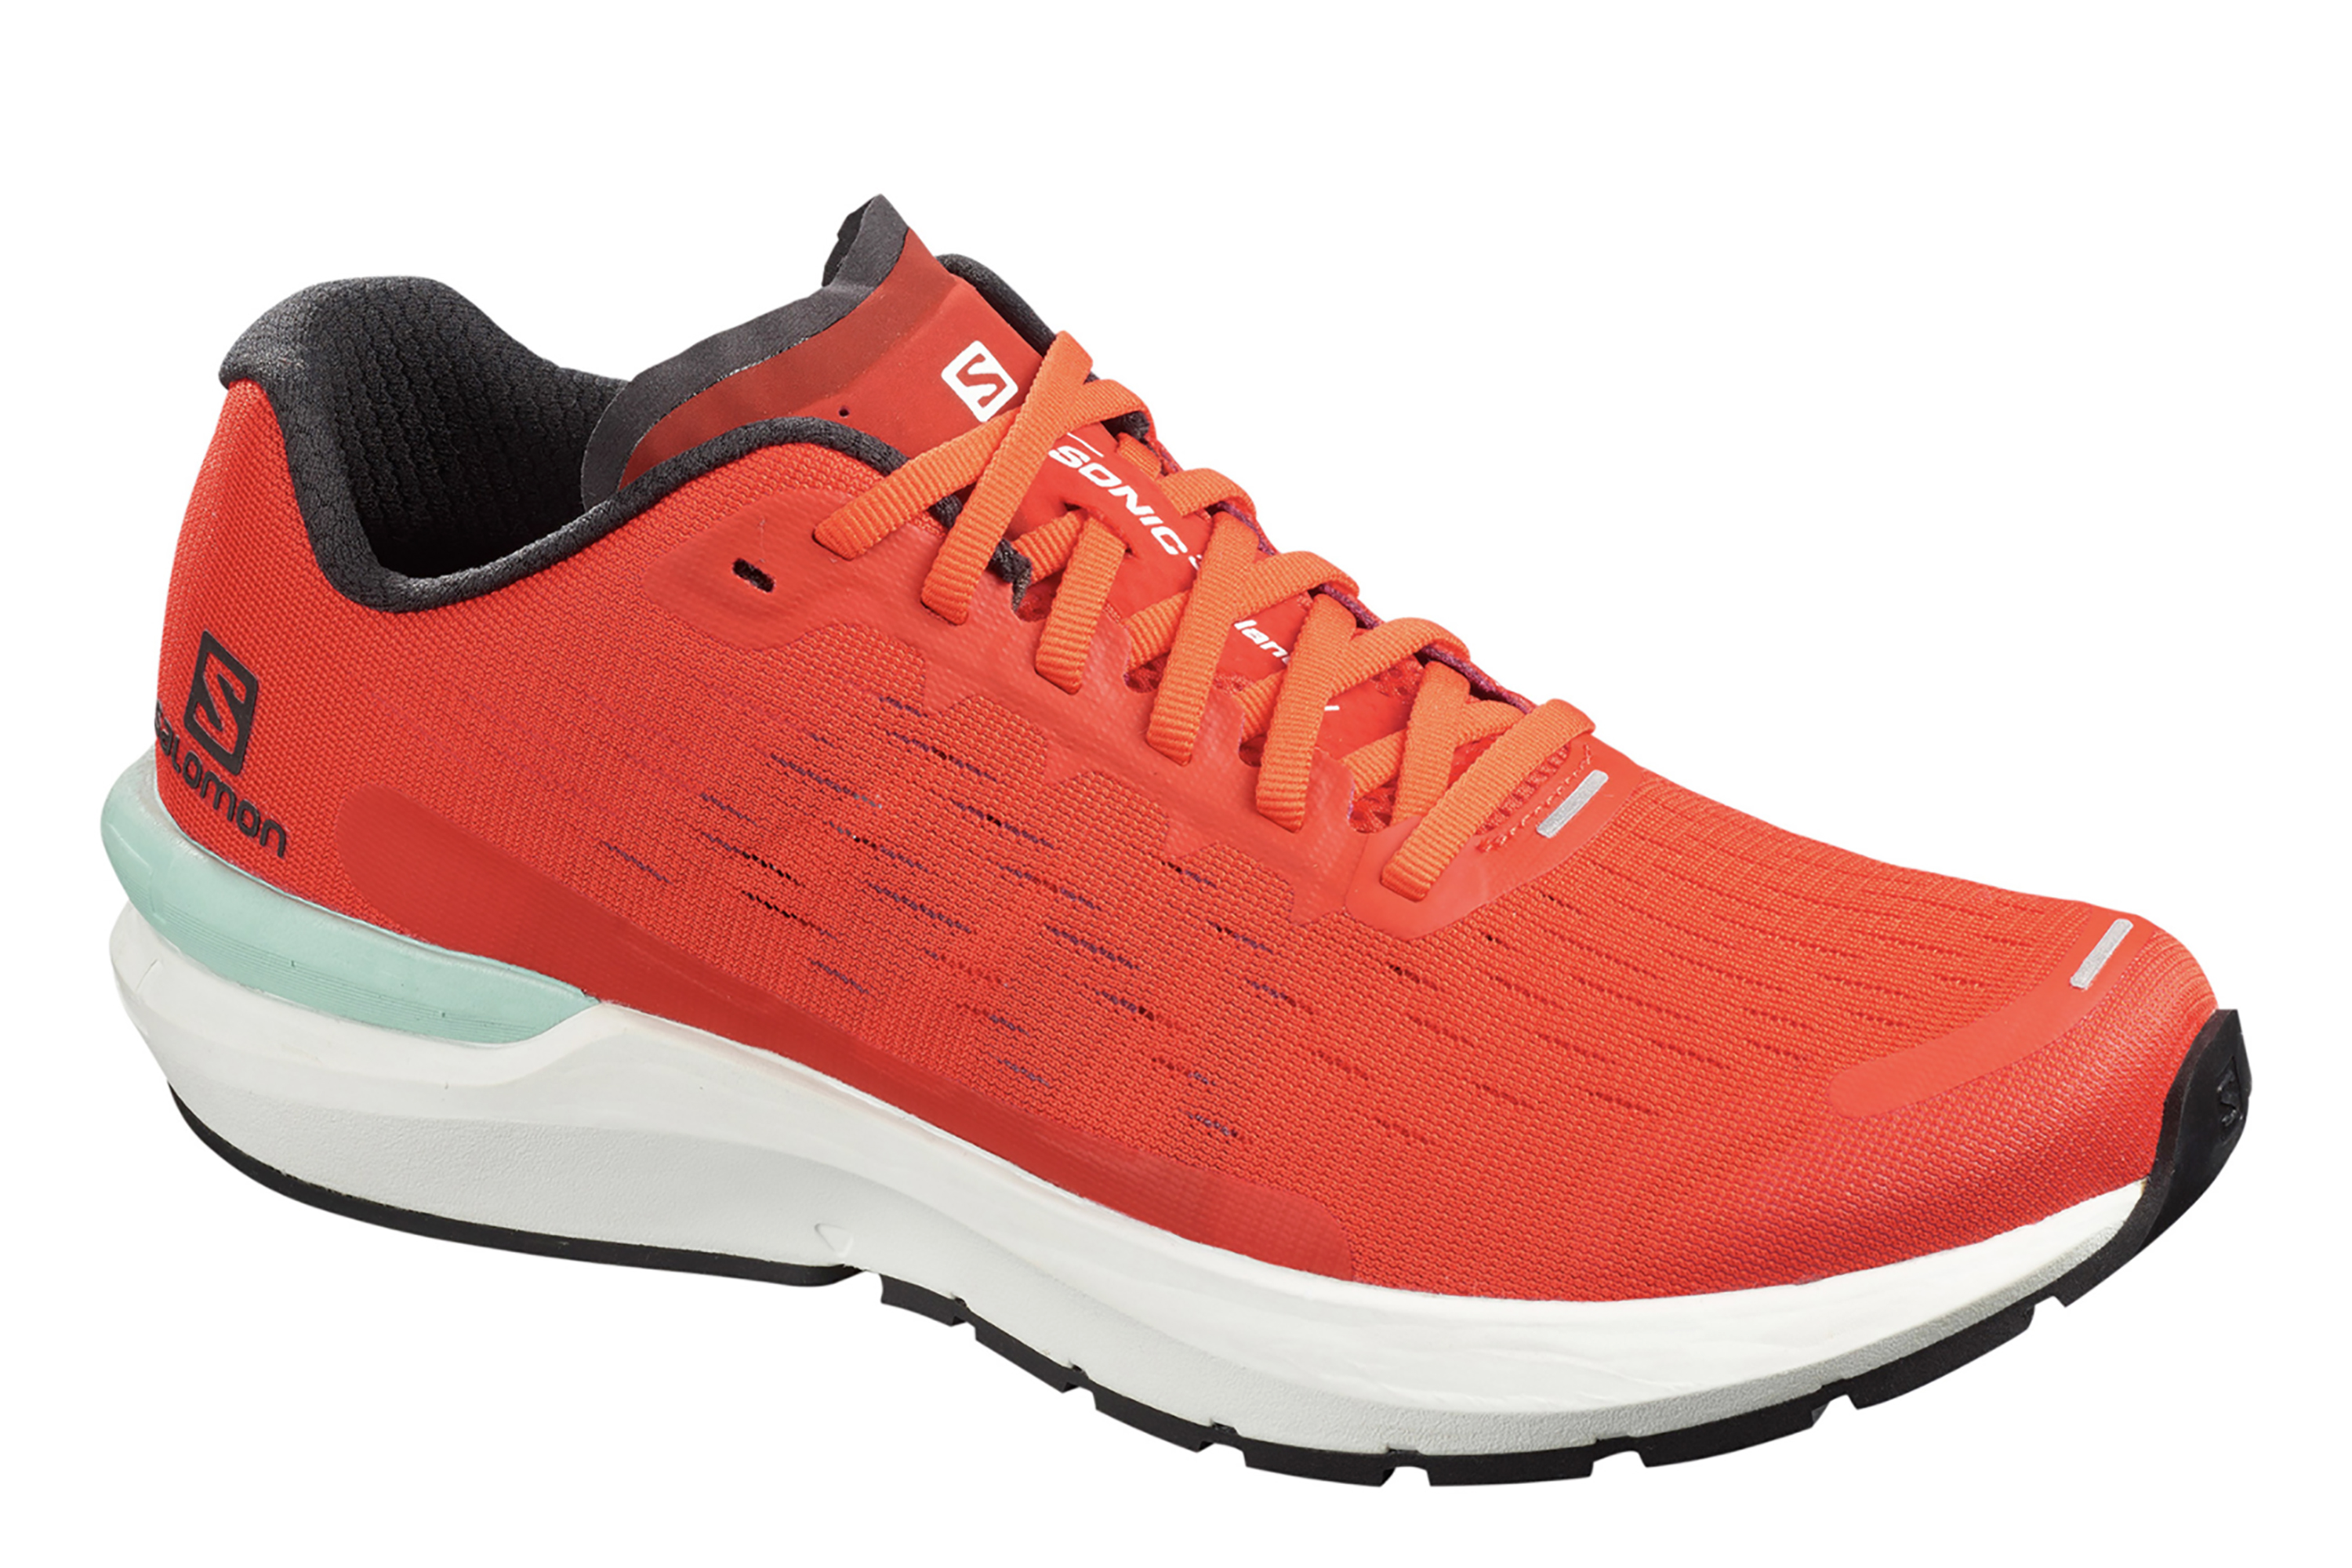 Salomon SONIC 3 Balance - The Best Overall Running Shoe for Men